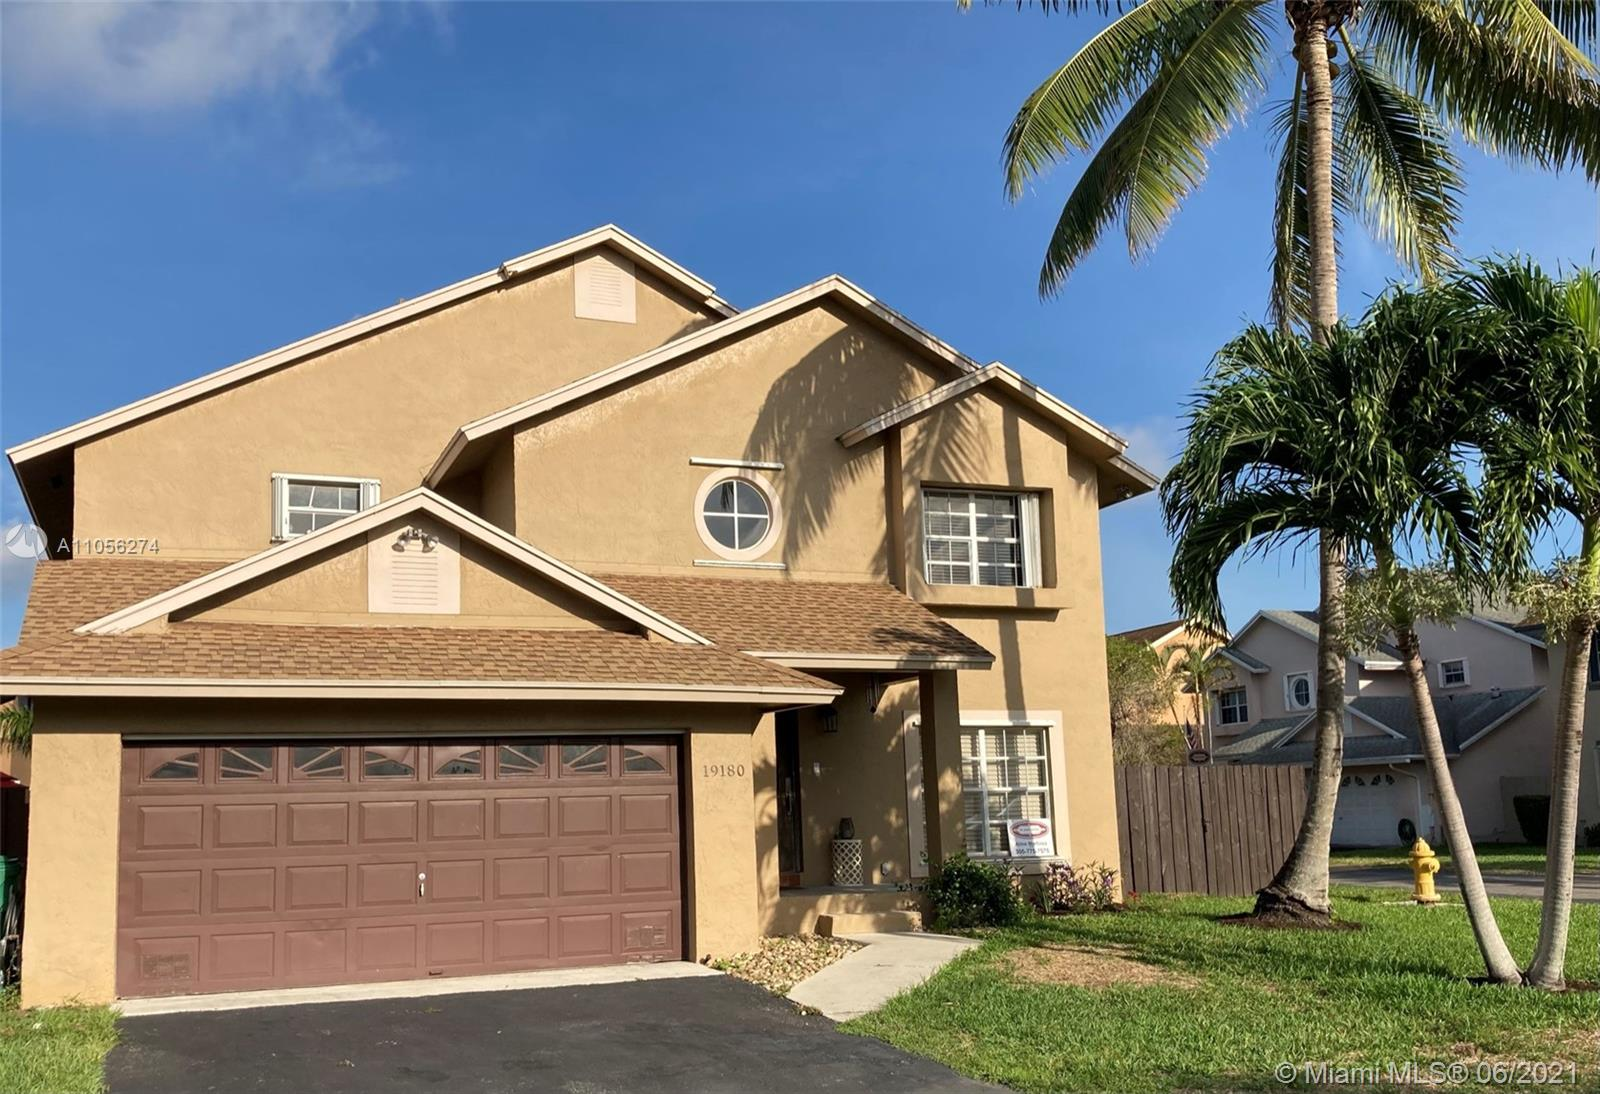 Country Lake Park - 19180 NW 78th Ave, Hialeah, FL 33015